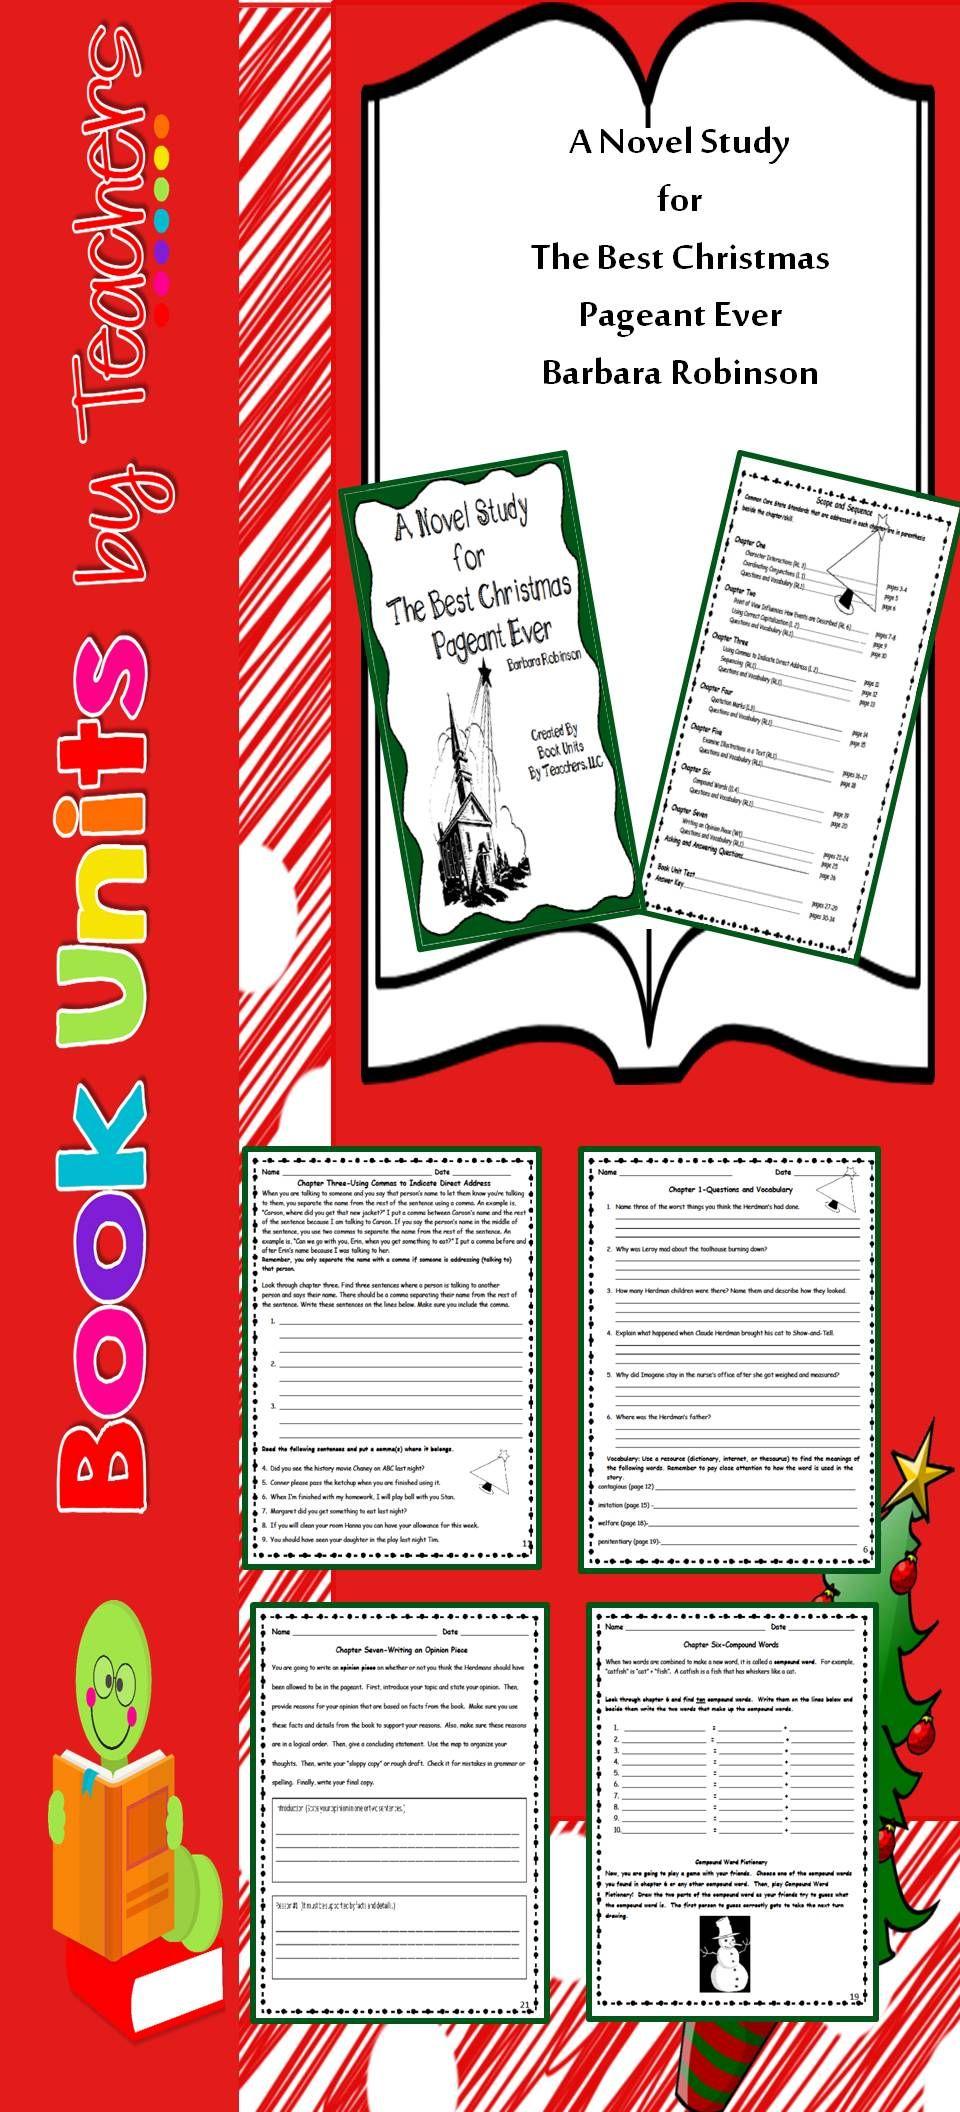 worksheet The Best Christmas Pageant Ever Worksheets the best christmas pageant ever by barbara robinson book unit includes reading language writing comprehension